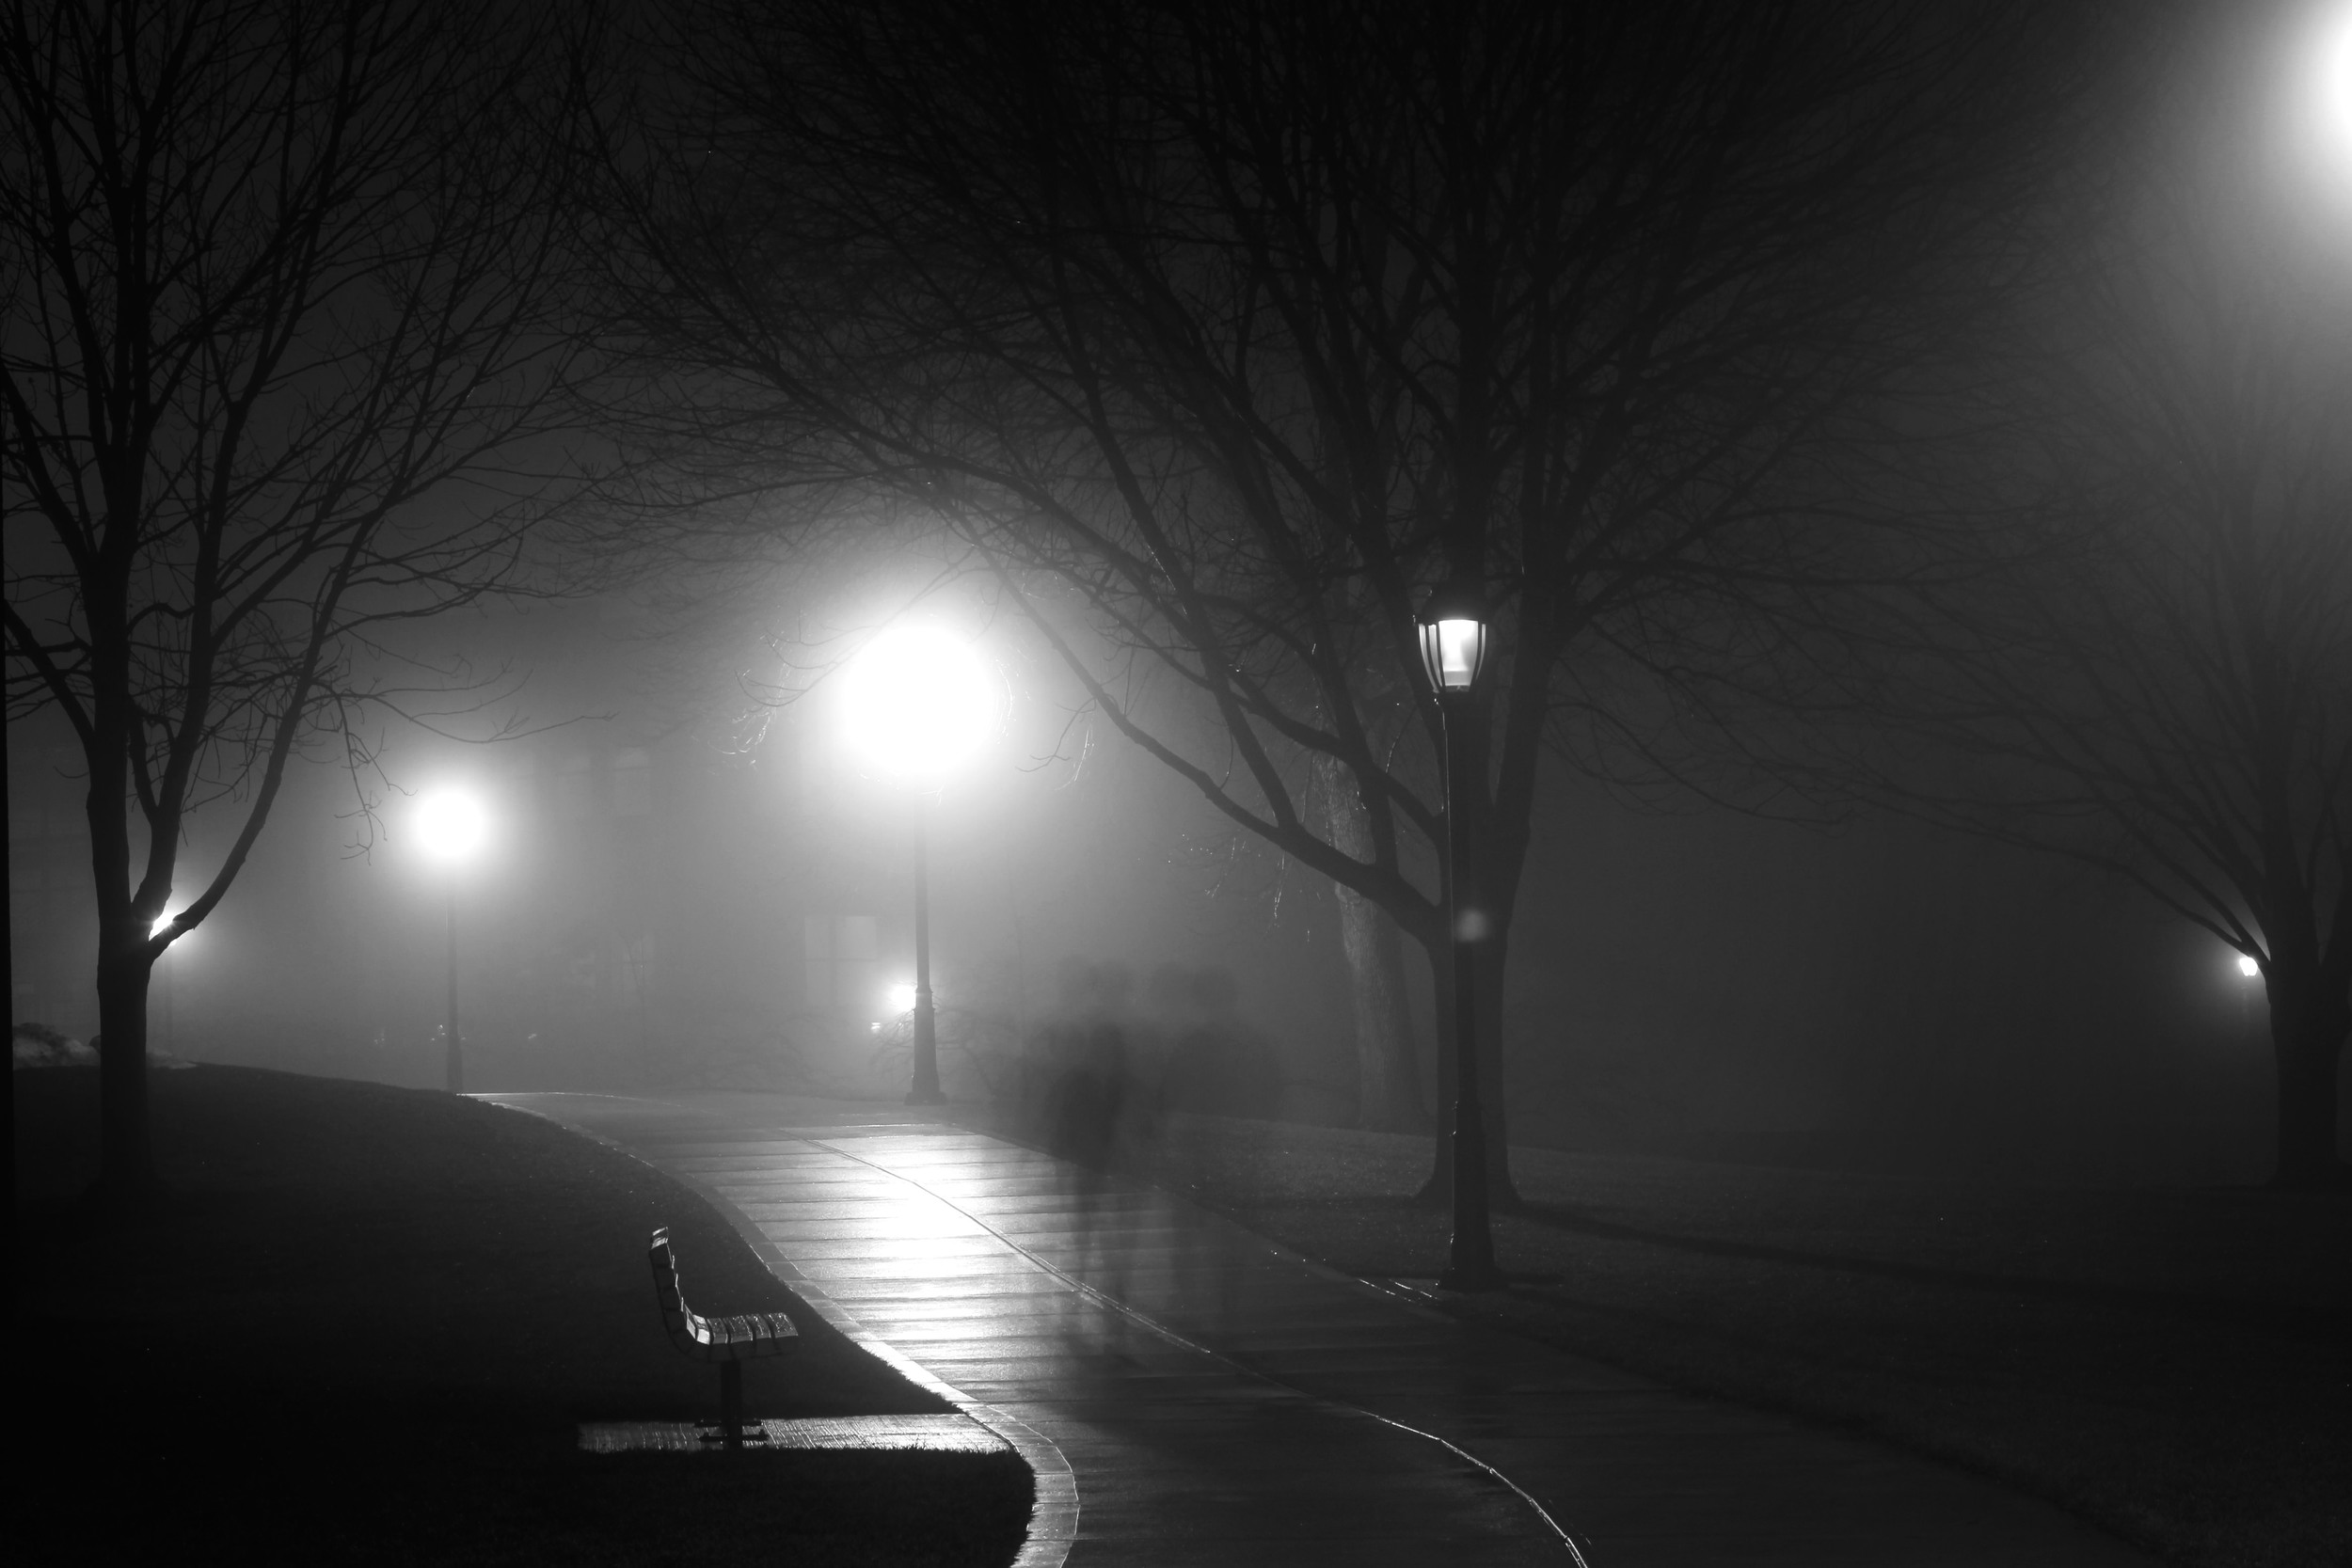 A lost soul followed Nerida home from work. Pic by  Jesse Bowser .